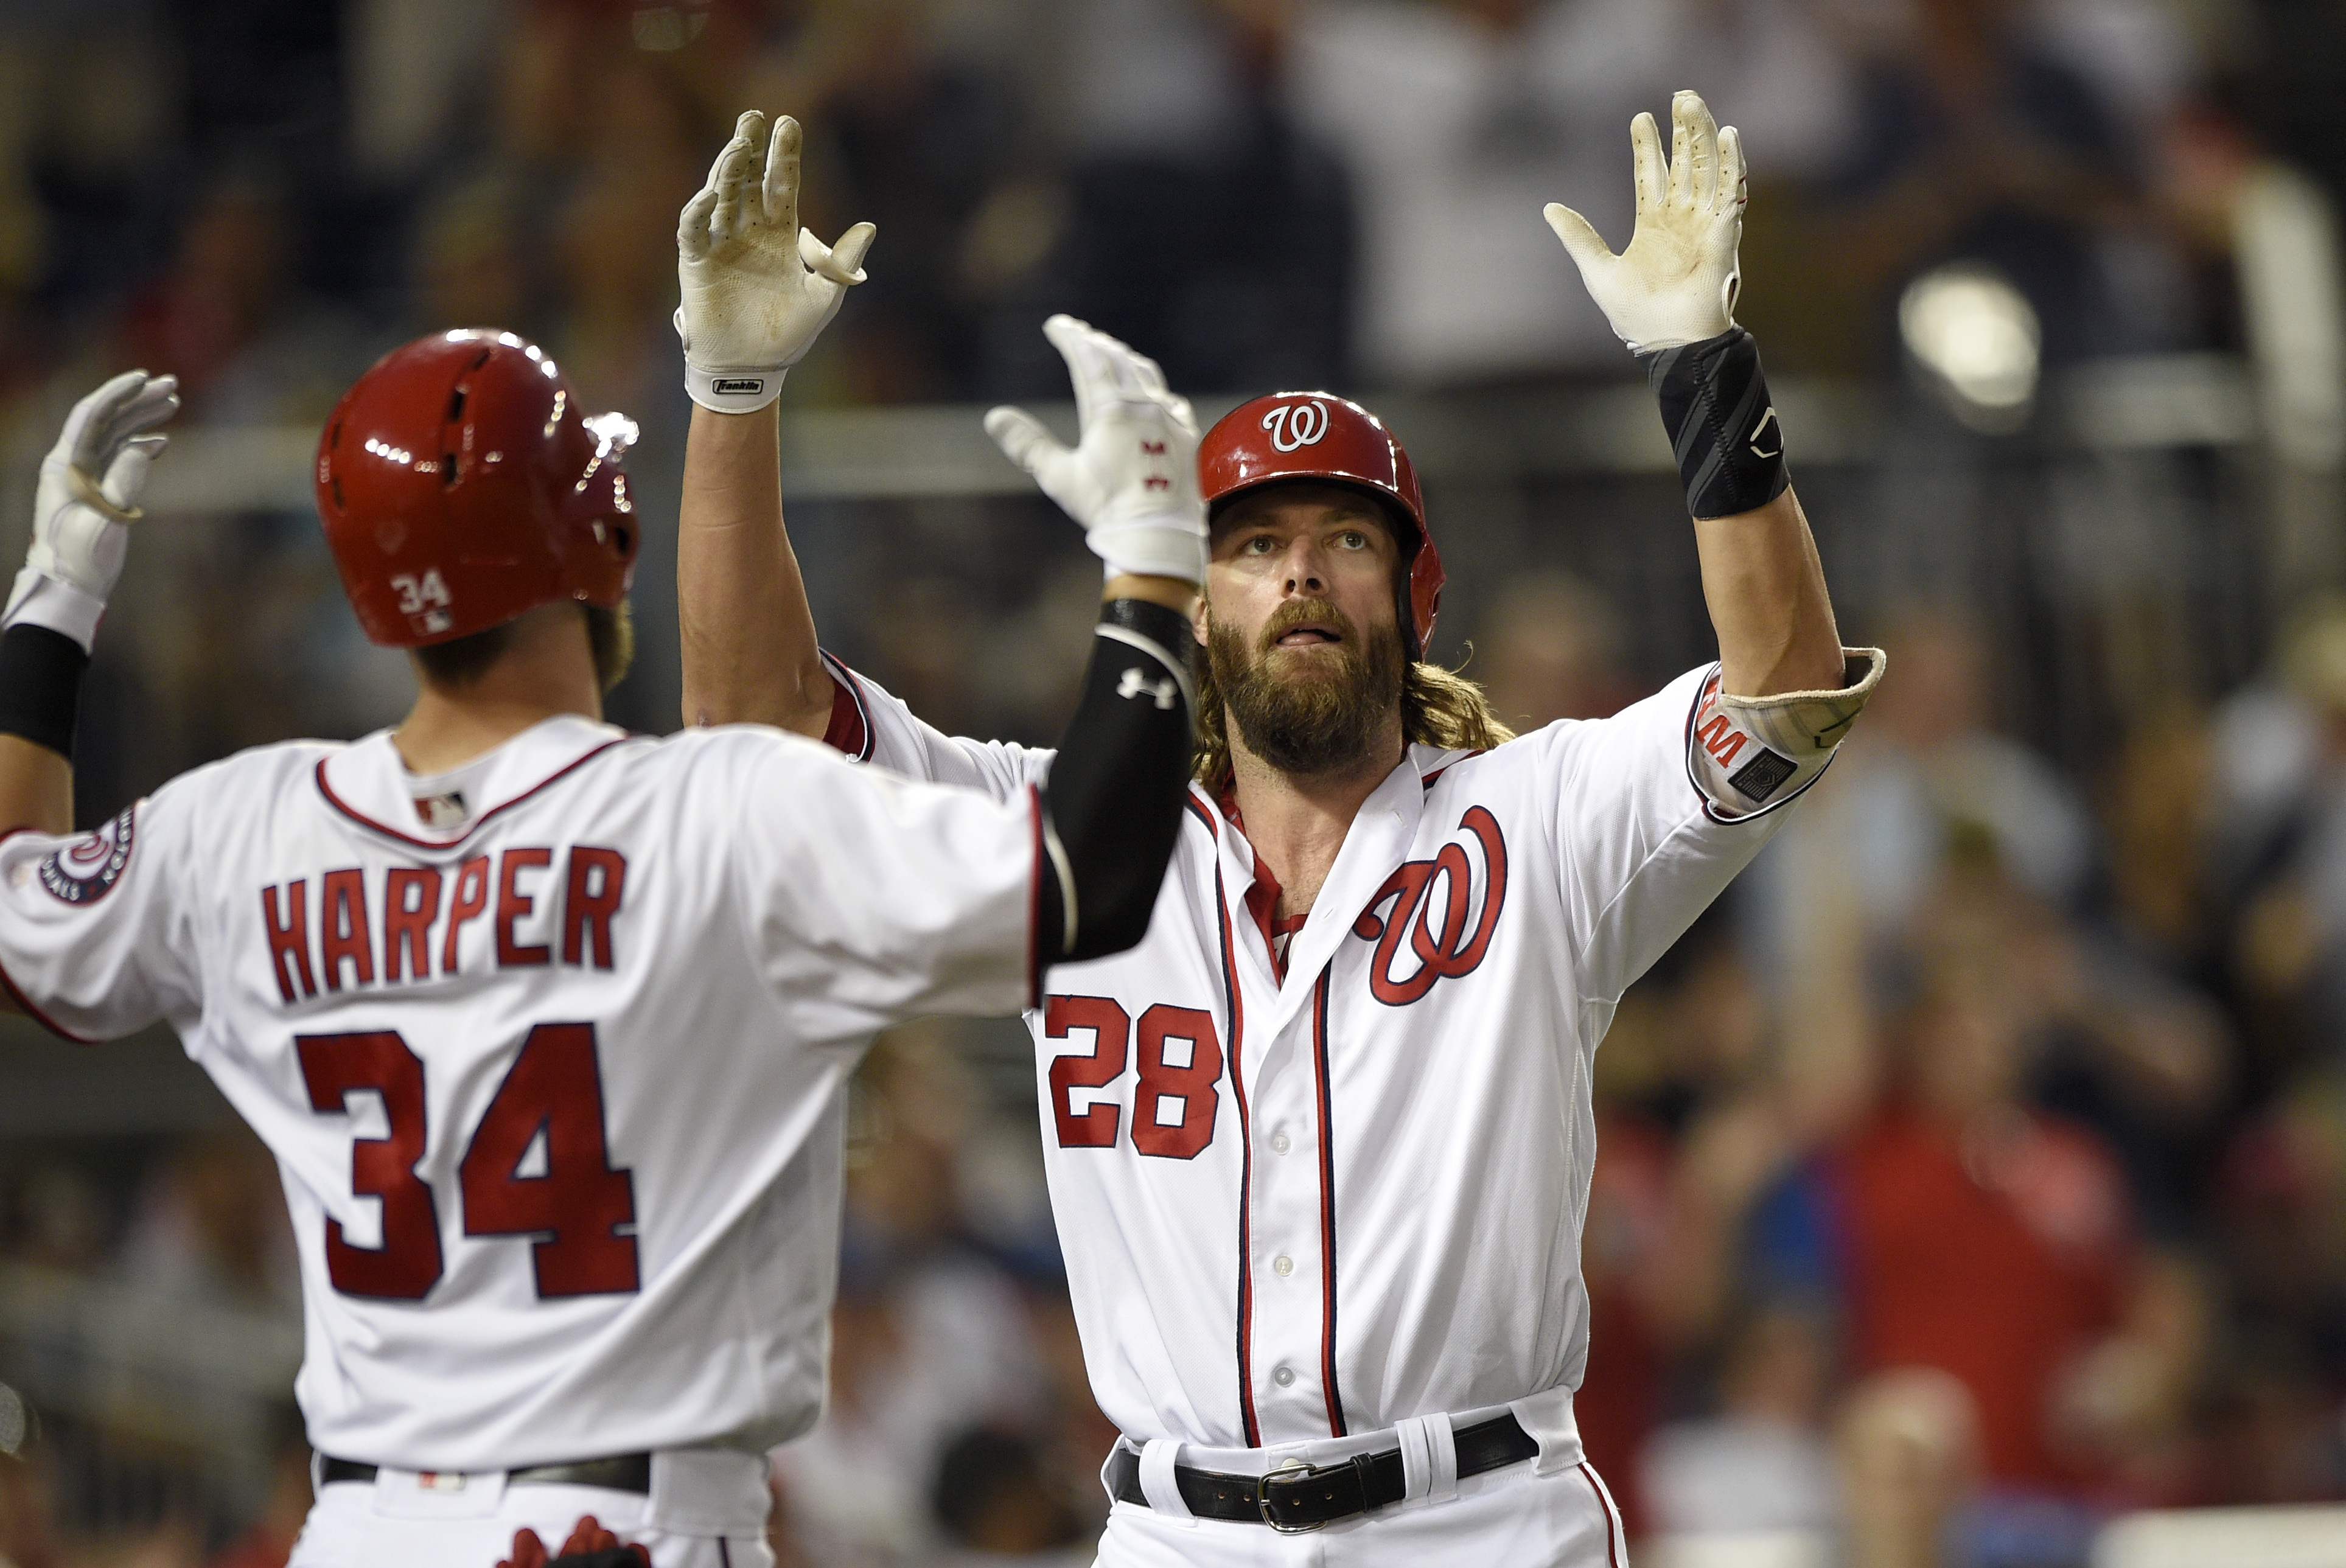 Washington Nationals' Jayson Werth (28) celebrates his home run with Bryce Harper (34) during the fifth inning of a baseball game against the Los Angeles Dodgers, Wednesday, July 20, 2016, in Washington. (AP Photo/Nick Wass)